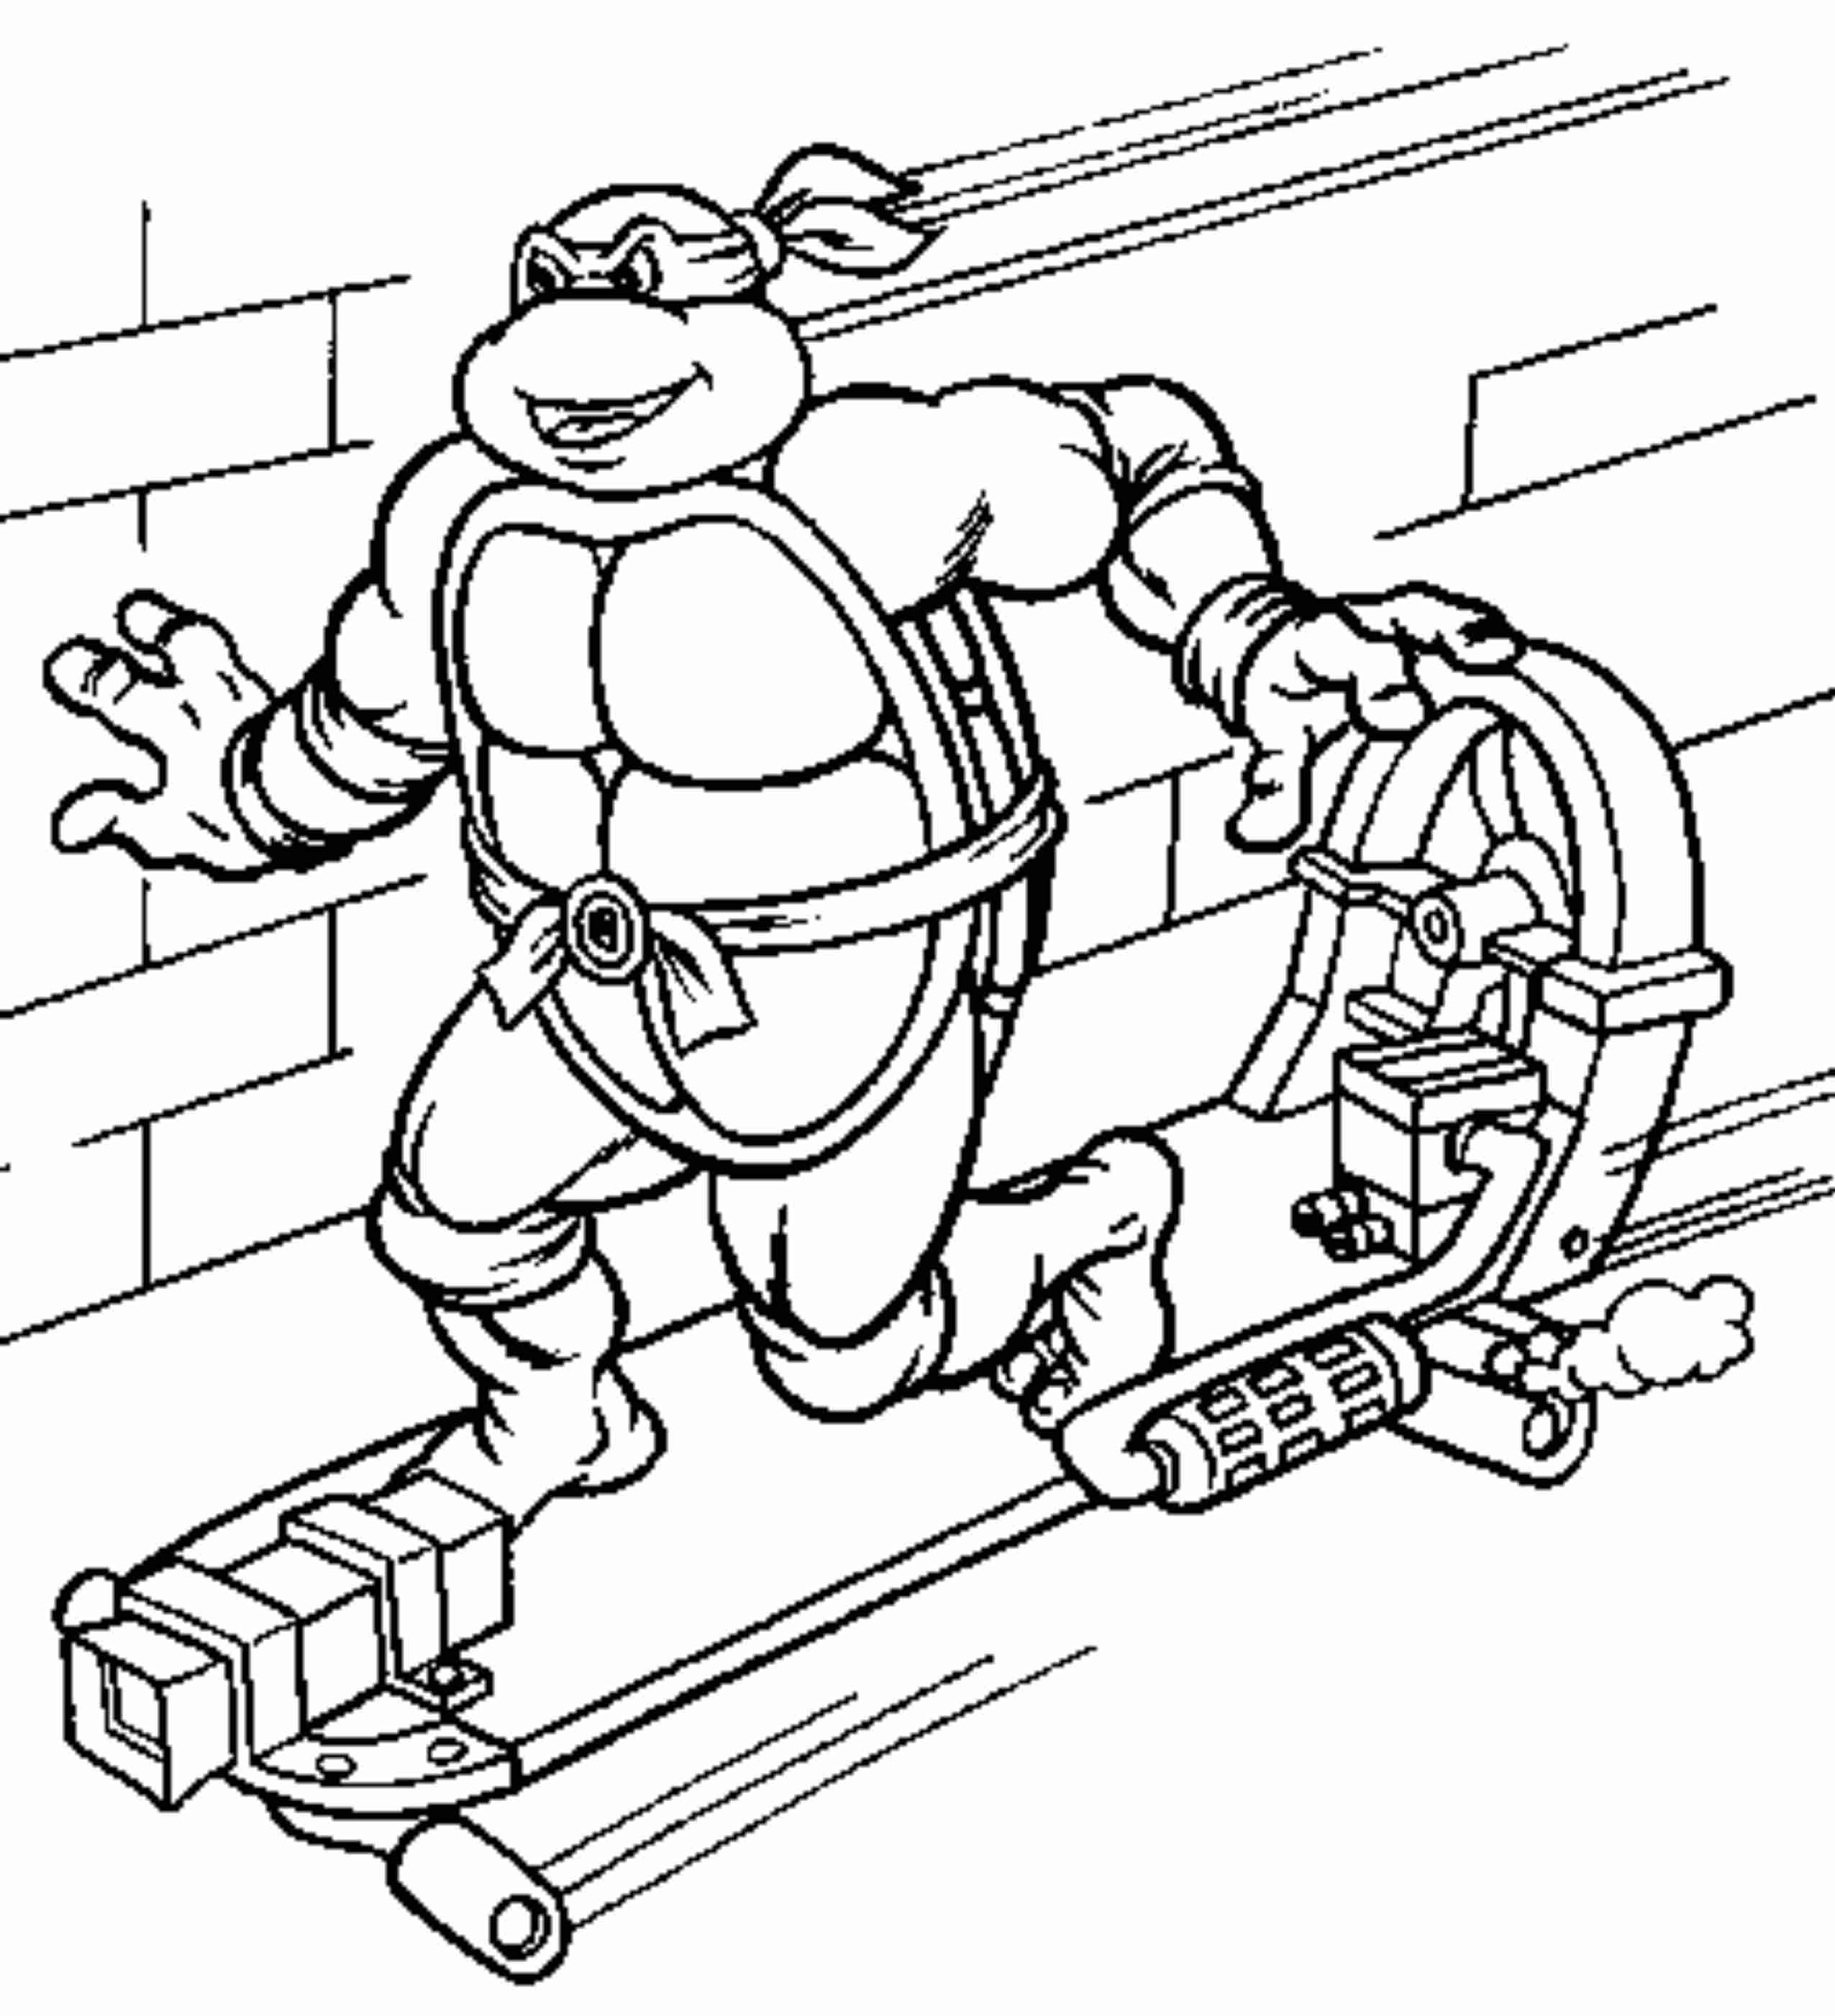 The Attractive Ninja Coloring Pages for Kids Activity